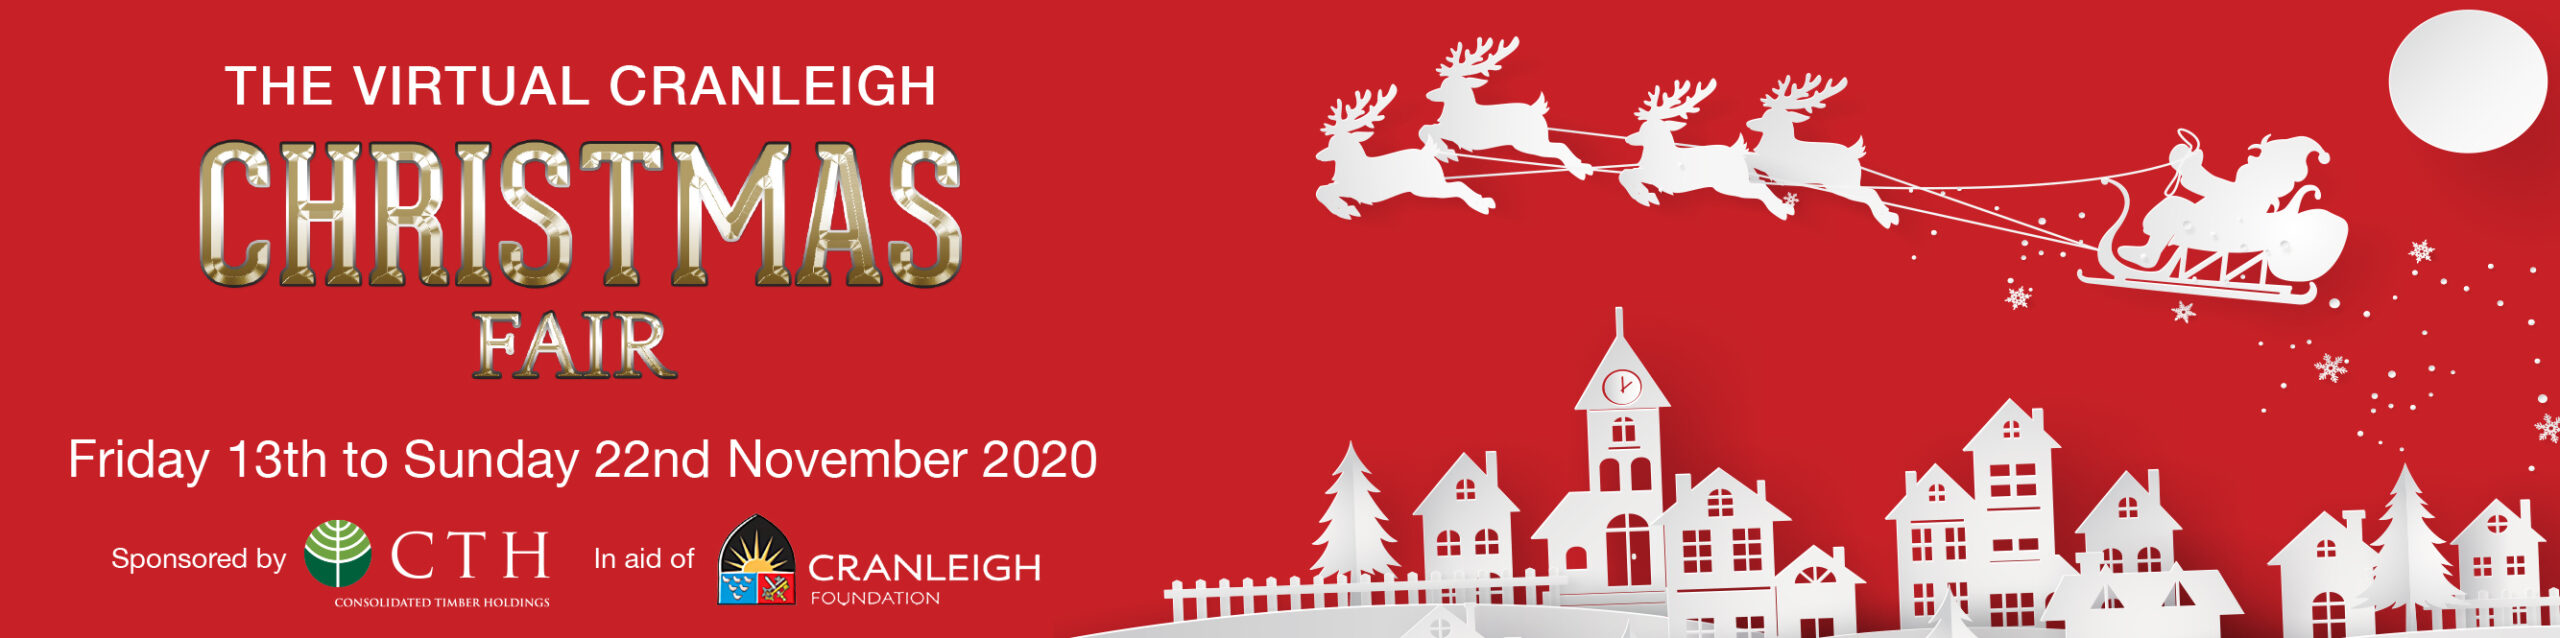 Cranleigh Christmas Fair 2020